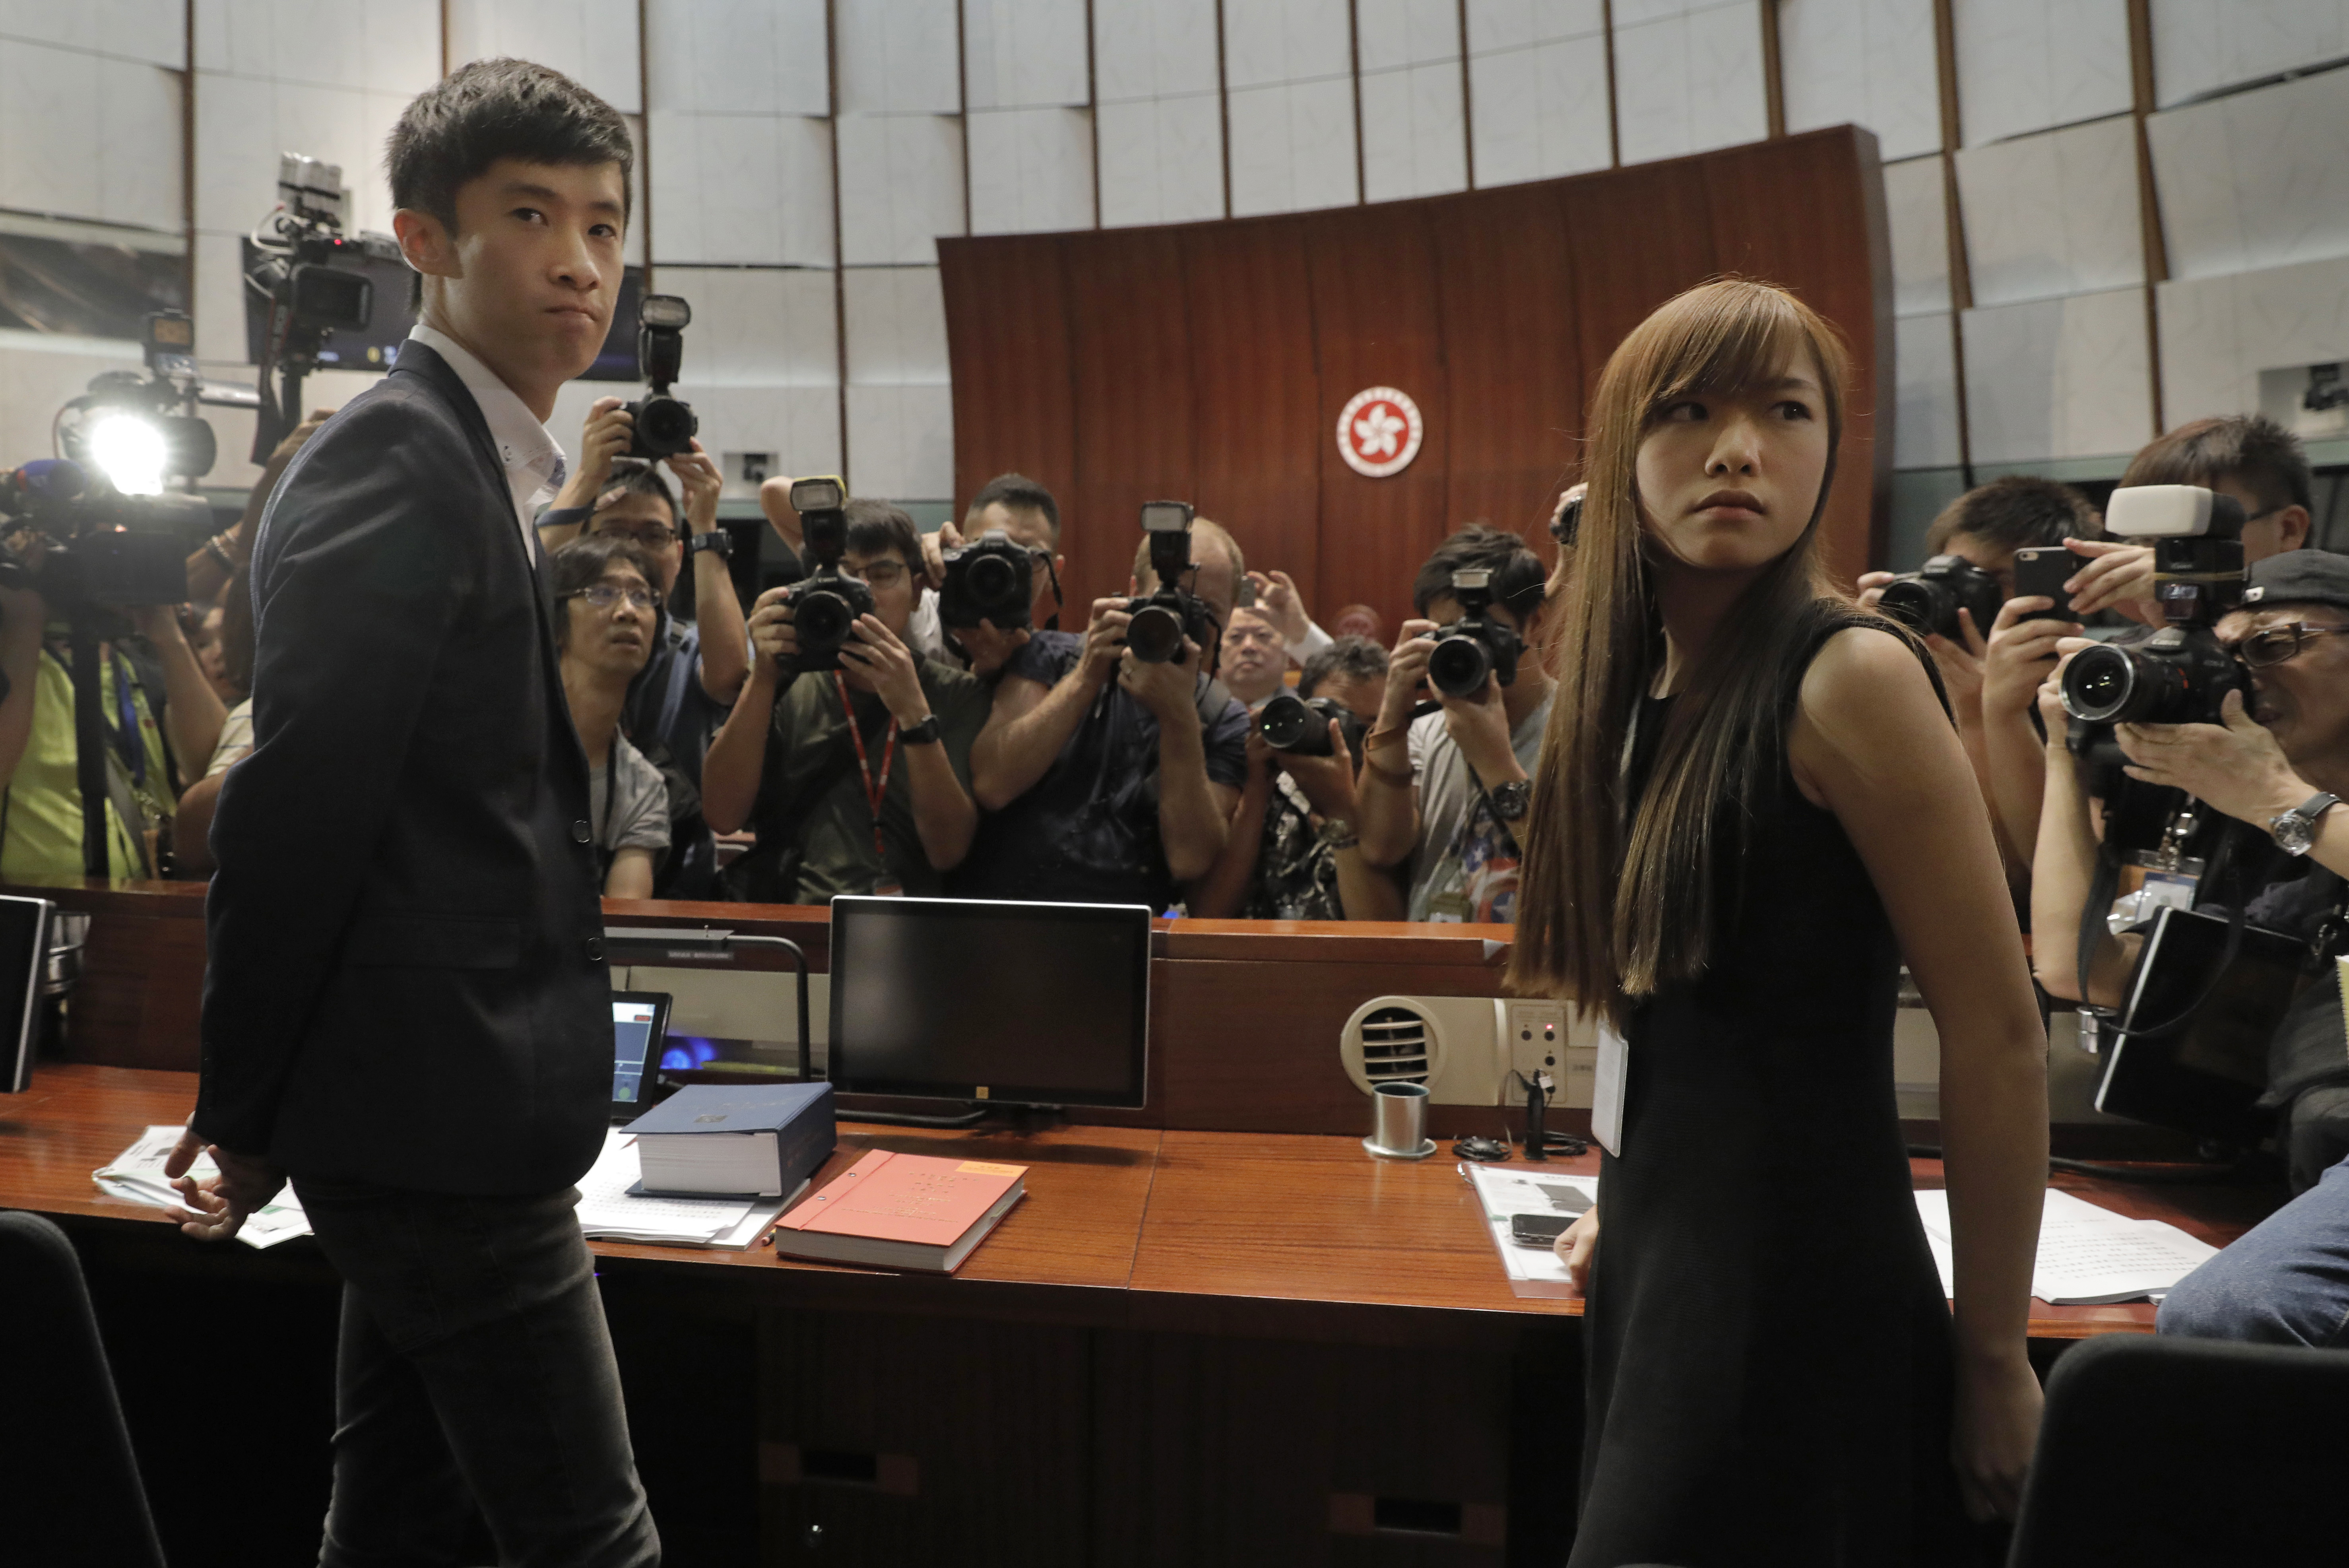 Newly elected Hong Kong lawmakers Yau Wai-ching, right, and Sixtus Leung, left, are surrounded by photographers at legislature council in Hong Kong Wednesday, Oct. 26, 2016. Unruly scenes have gripped Hong Kong's legislature as two newly elected lawmakers defied an order barring them from entering to retake their oaths.